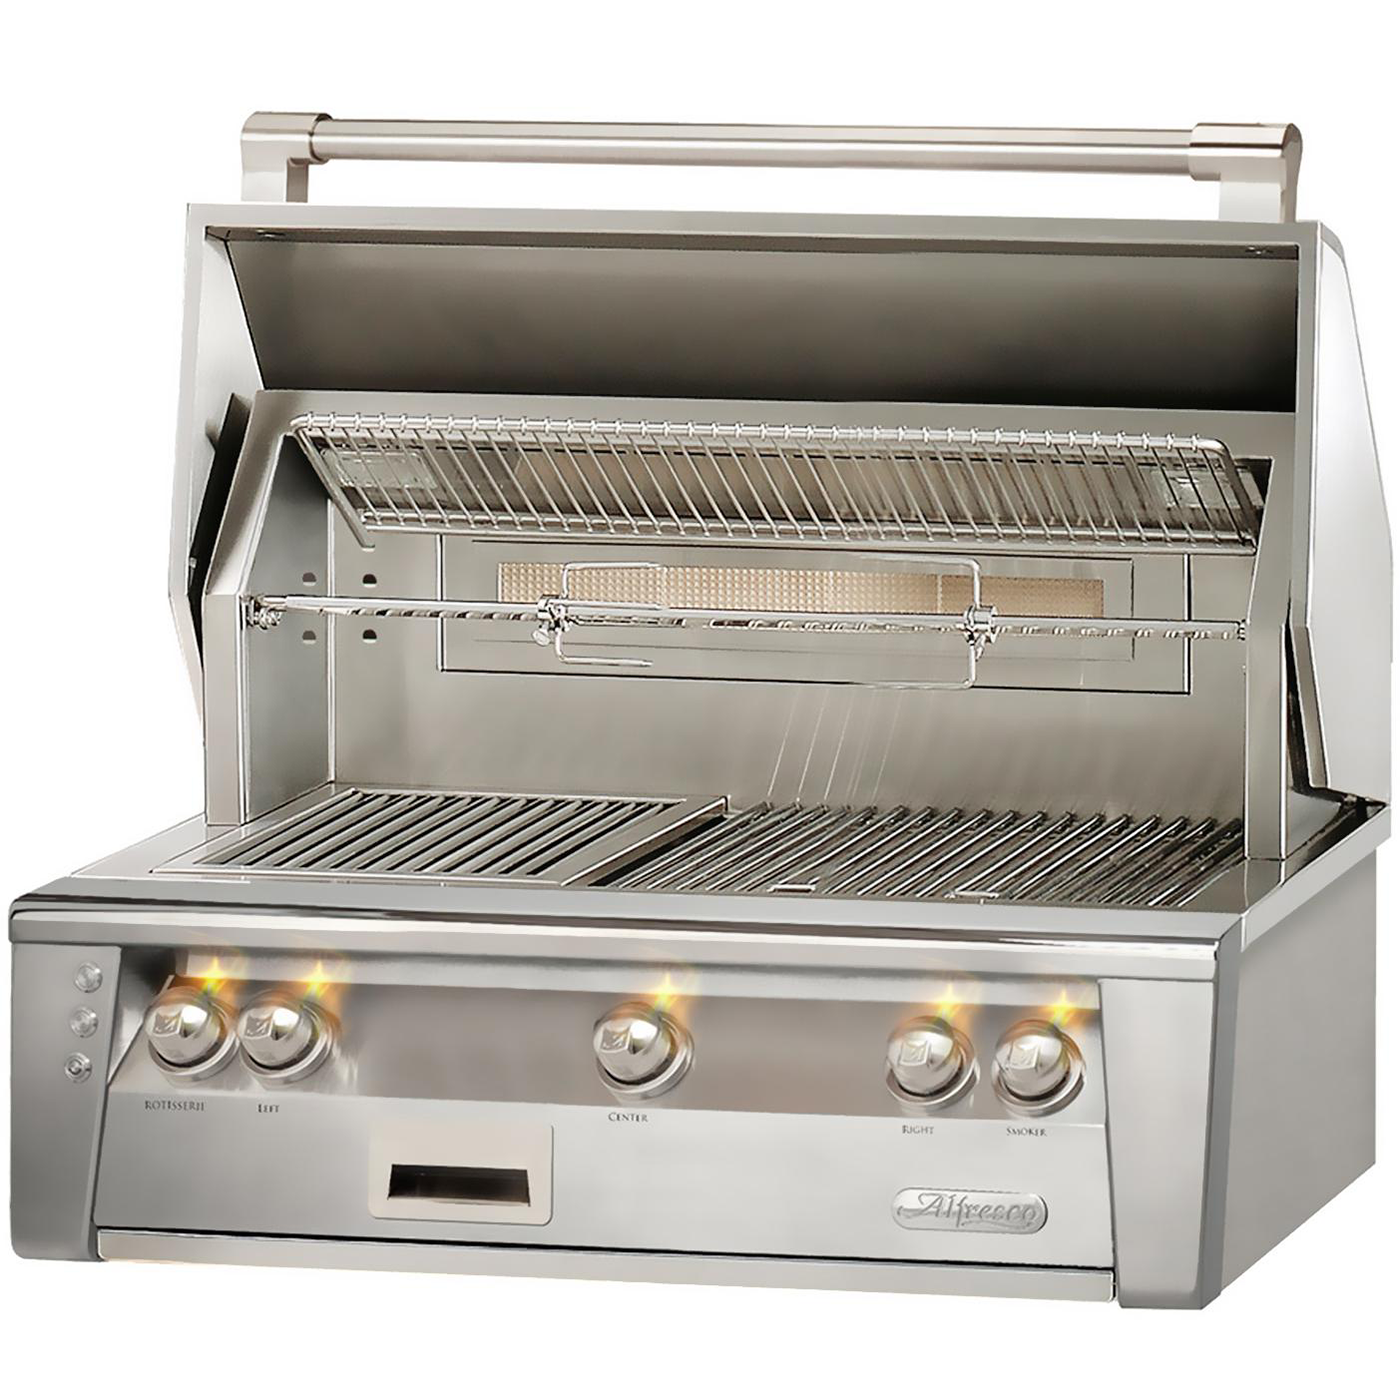 "36"" Alfresco ALXE Built-In Gas Grill w/ Sear Zone & Rotisserie, Liquid Propane"